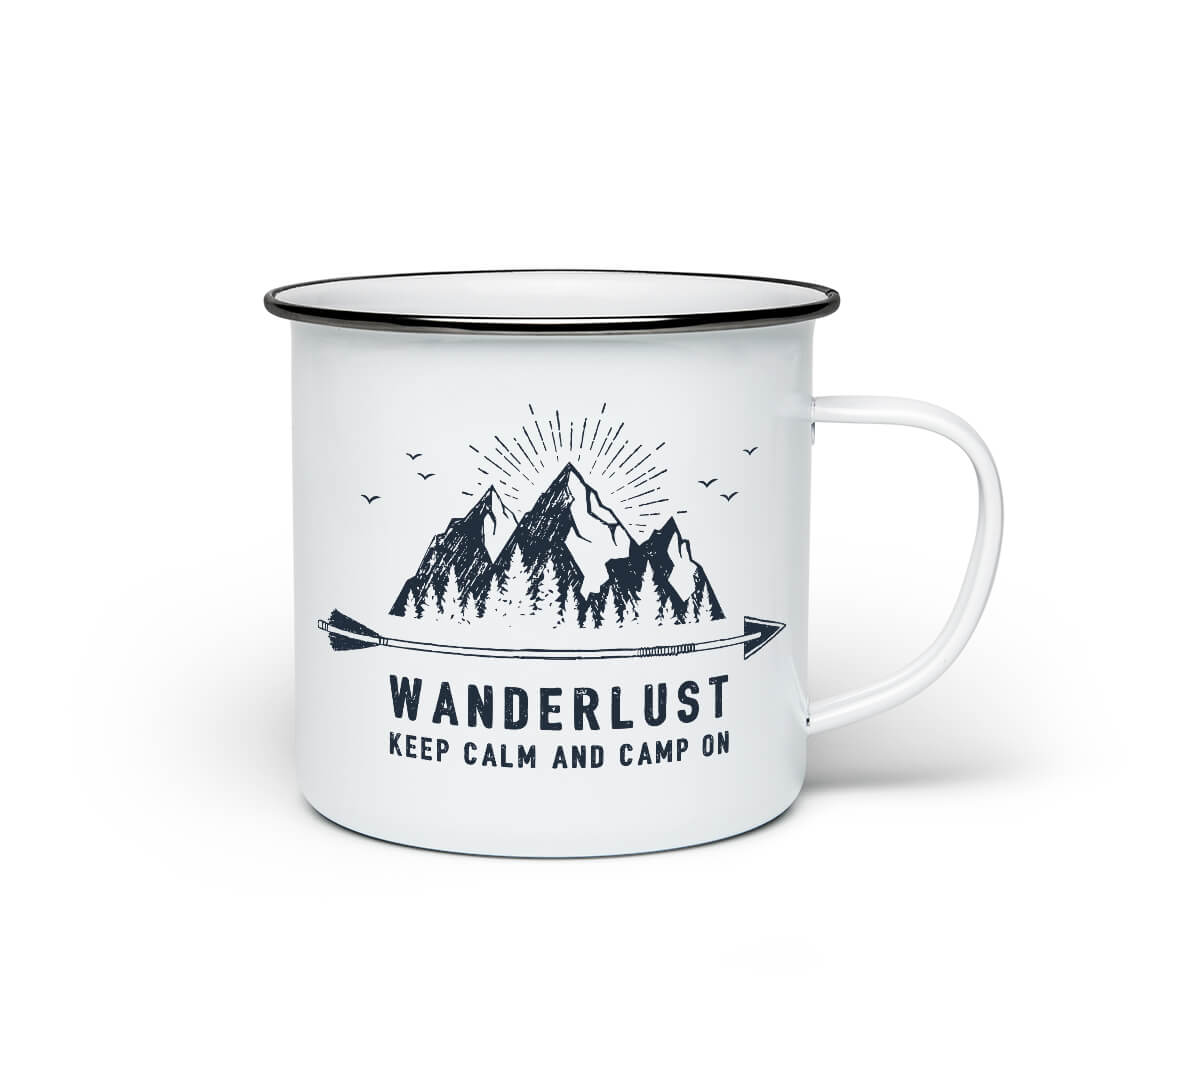 Explore More Campfire Mug Wanderlust Travel Lover Enamel Coated Camper Coffee Cup w//Handle Tin Enamelware Stainless Steel Traveler Camp Fire Metal Coated Camping Hiking Trip Gift 12oz Digibuddha